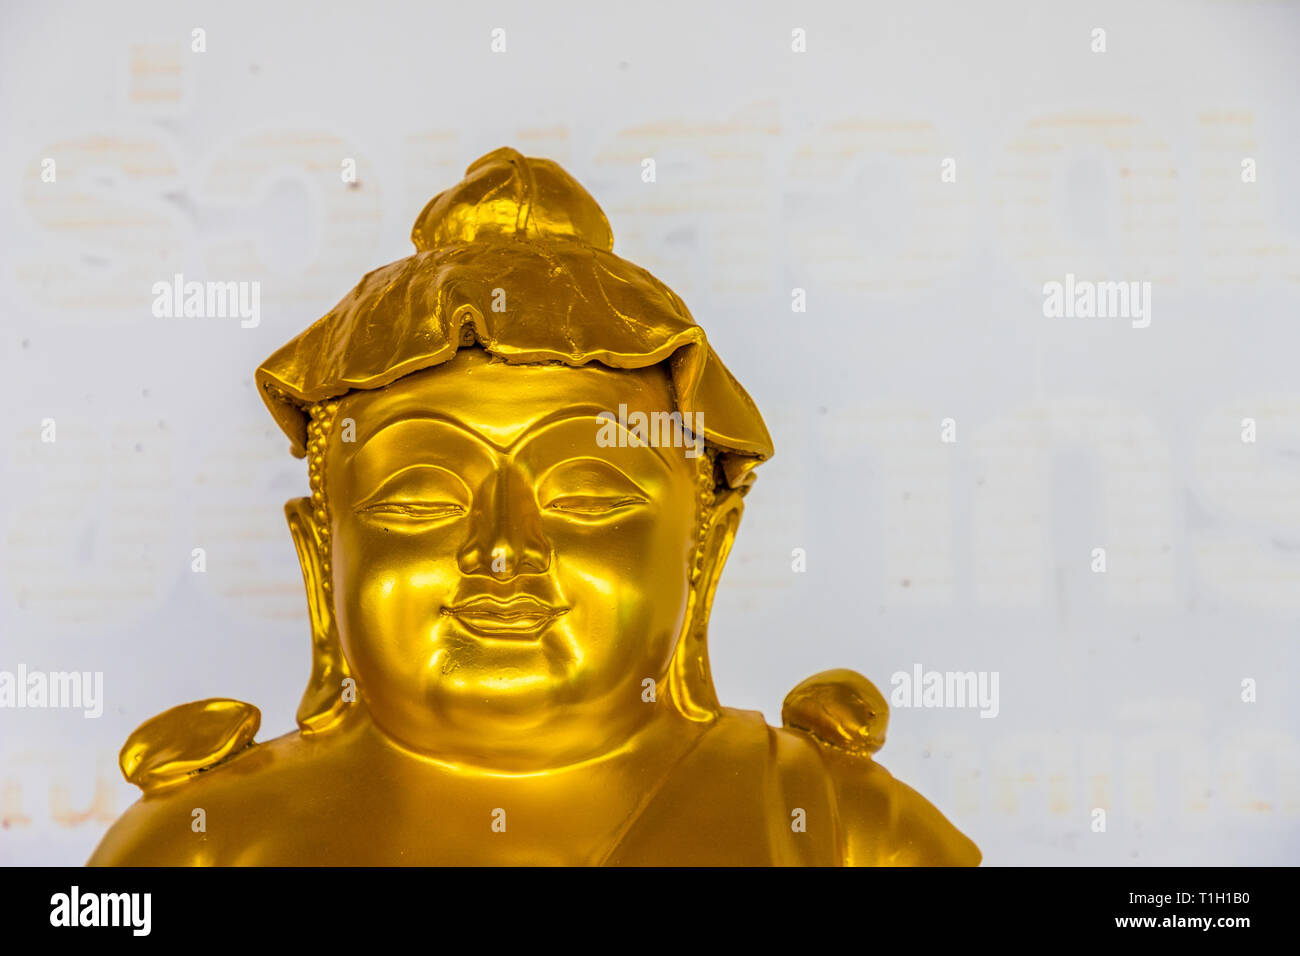 the big buddha statue in Phucket Thailand - Stock Image